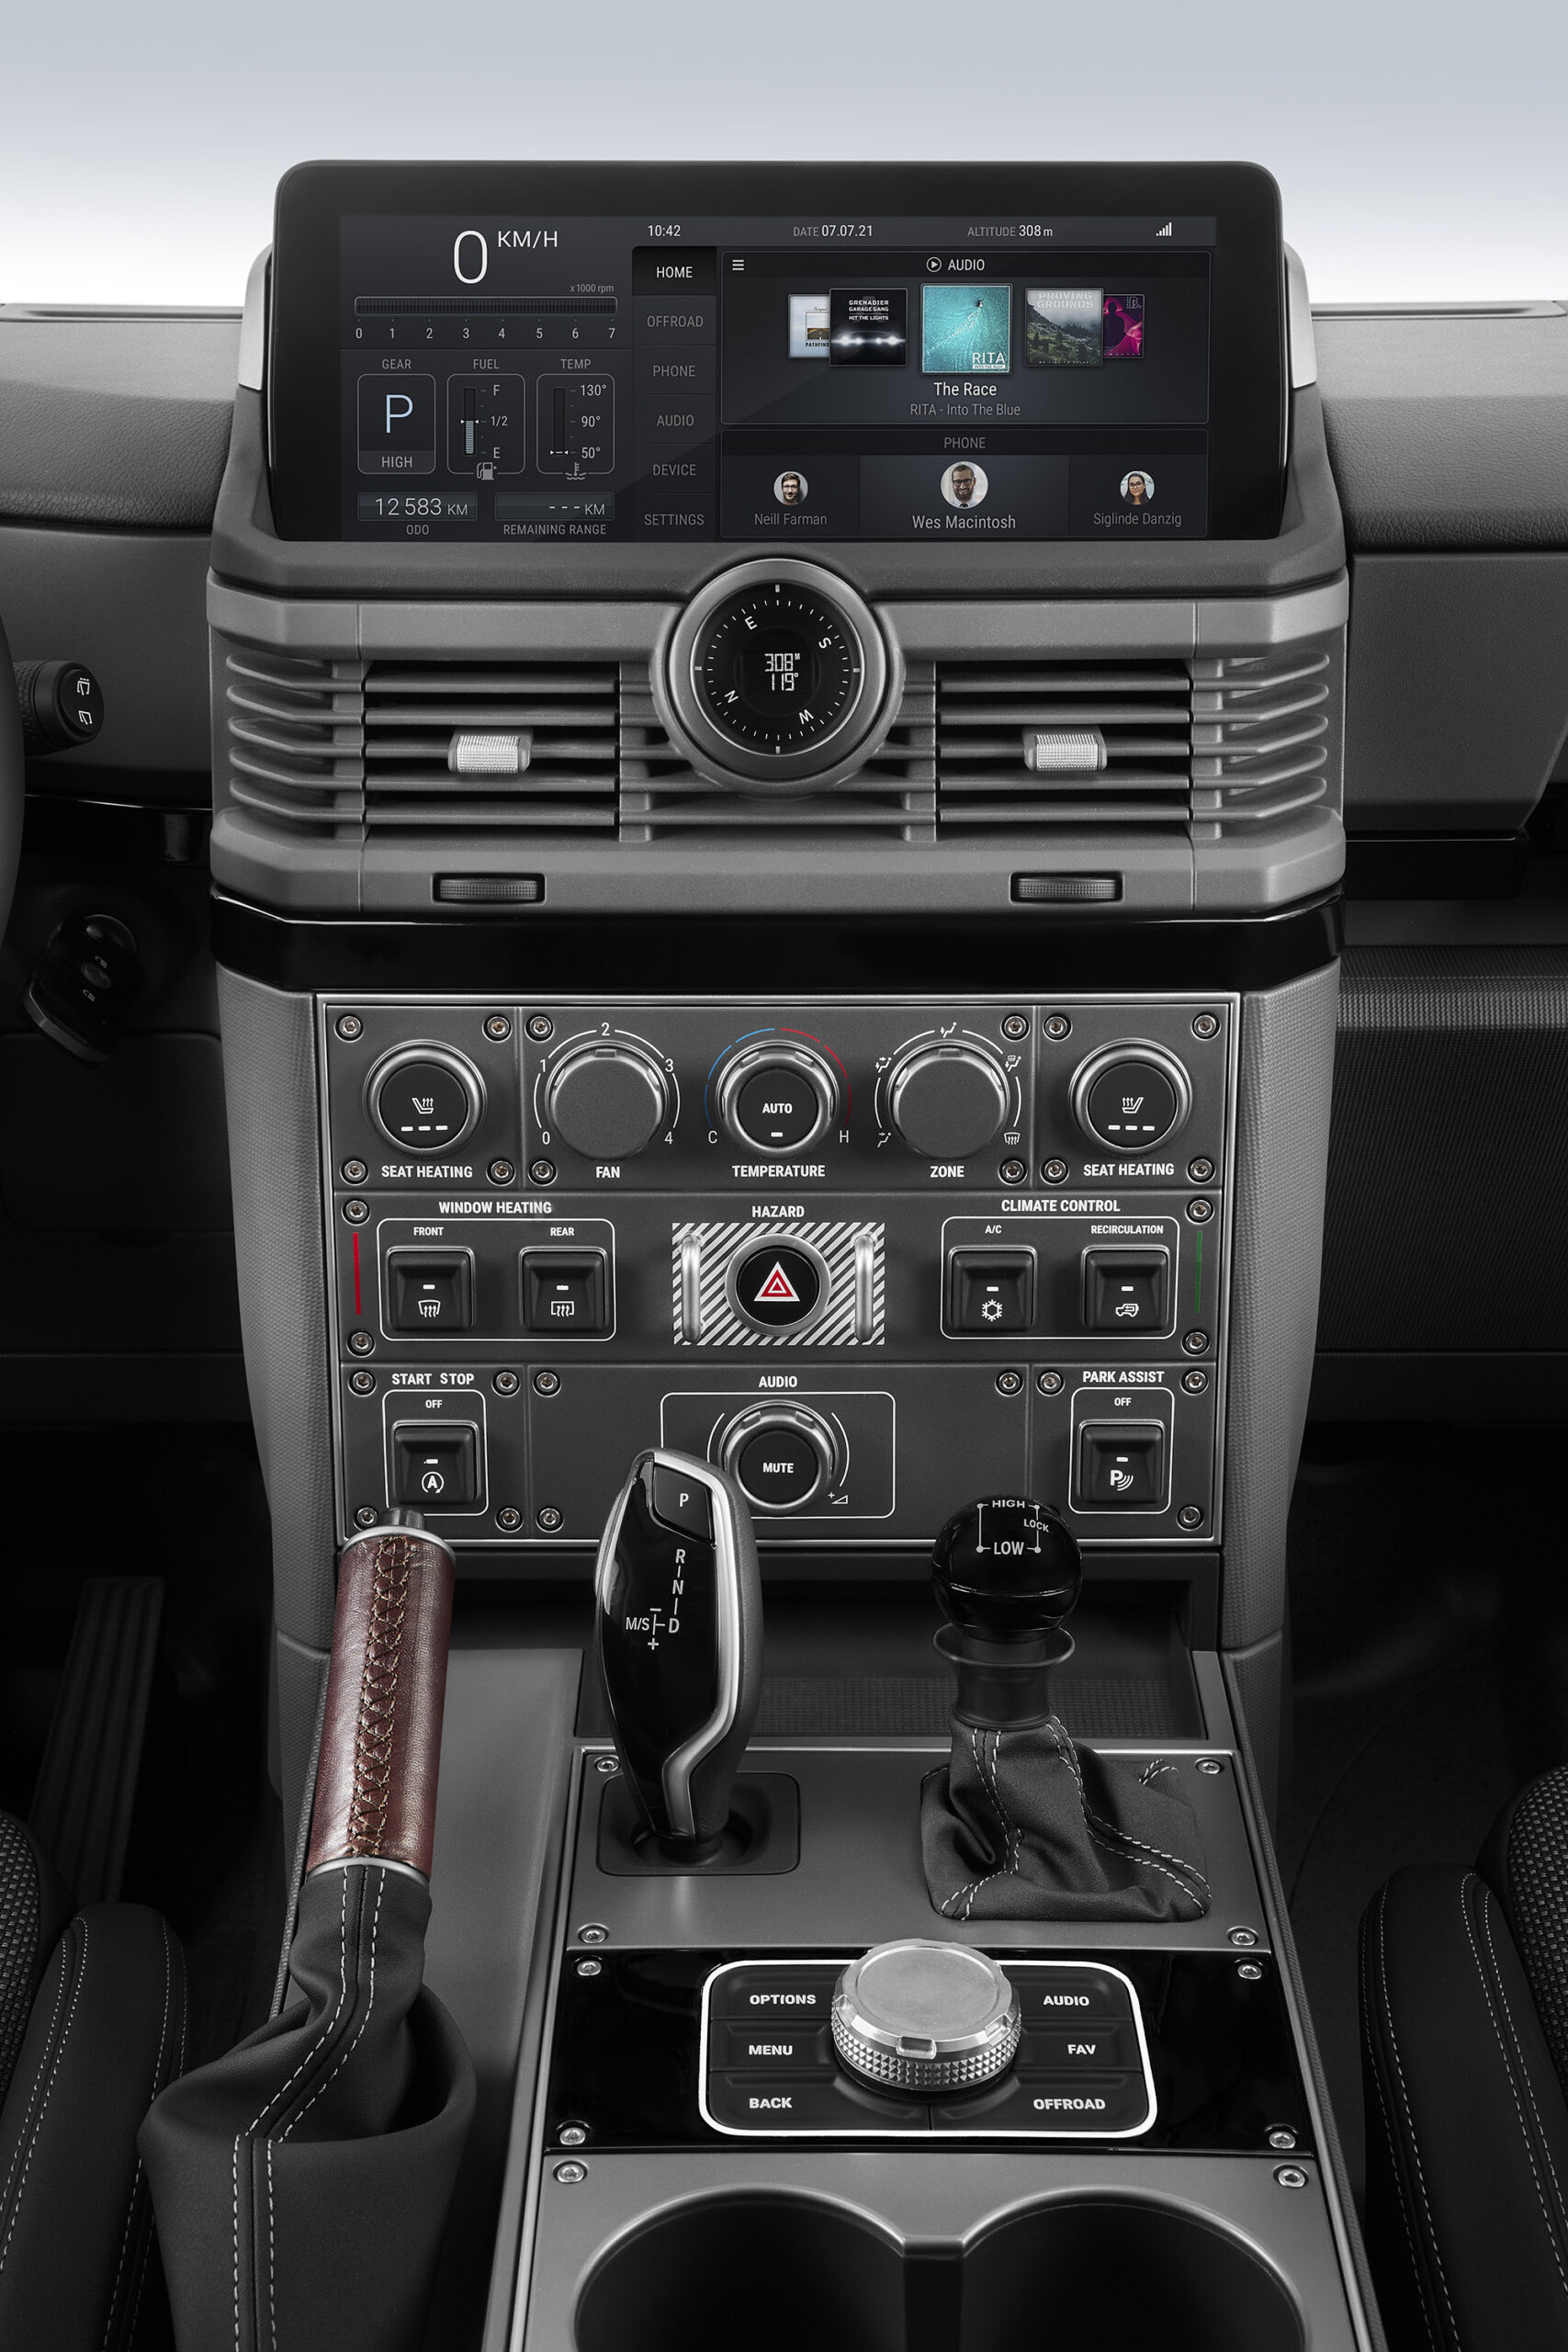 The center stack includes oversized toggle switches, rotary dials, and evenly spaced controls.